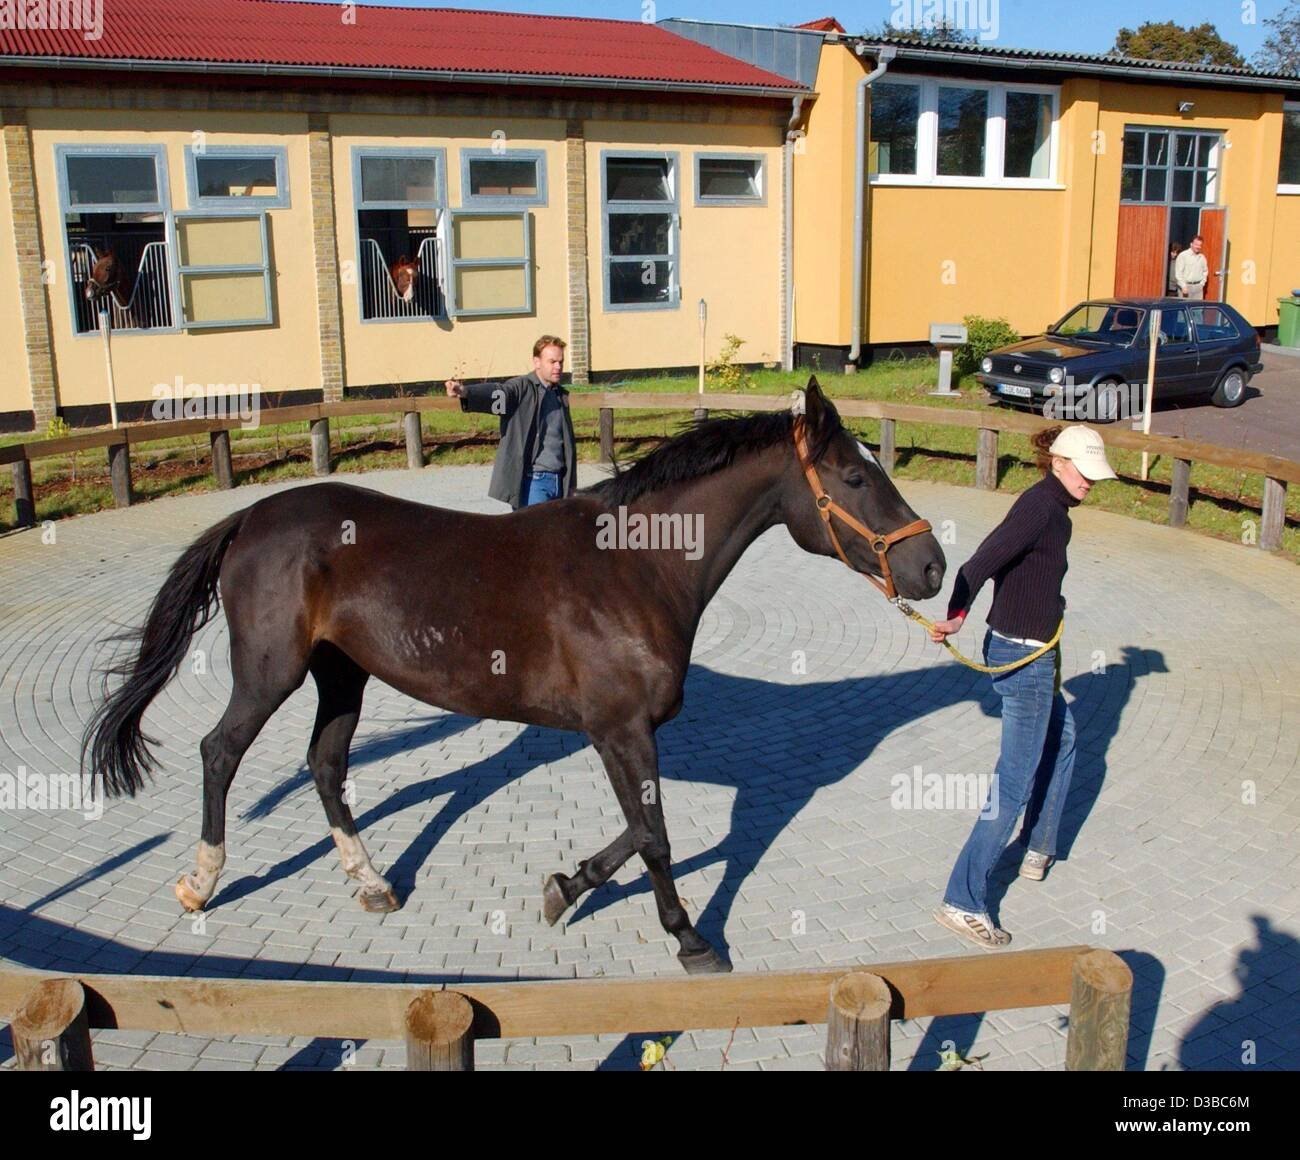 (dpa) - Veterinary assistant Mandy and one of the patients of the 'Horse Clinic Havelland' are doing the - Stock Image